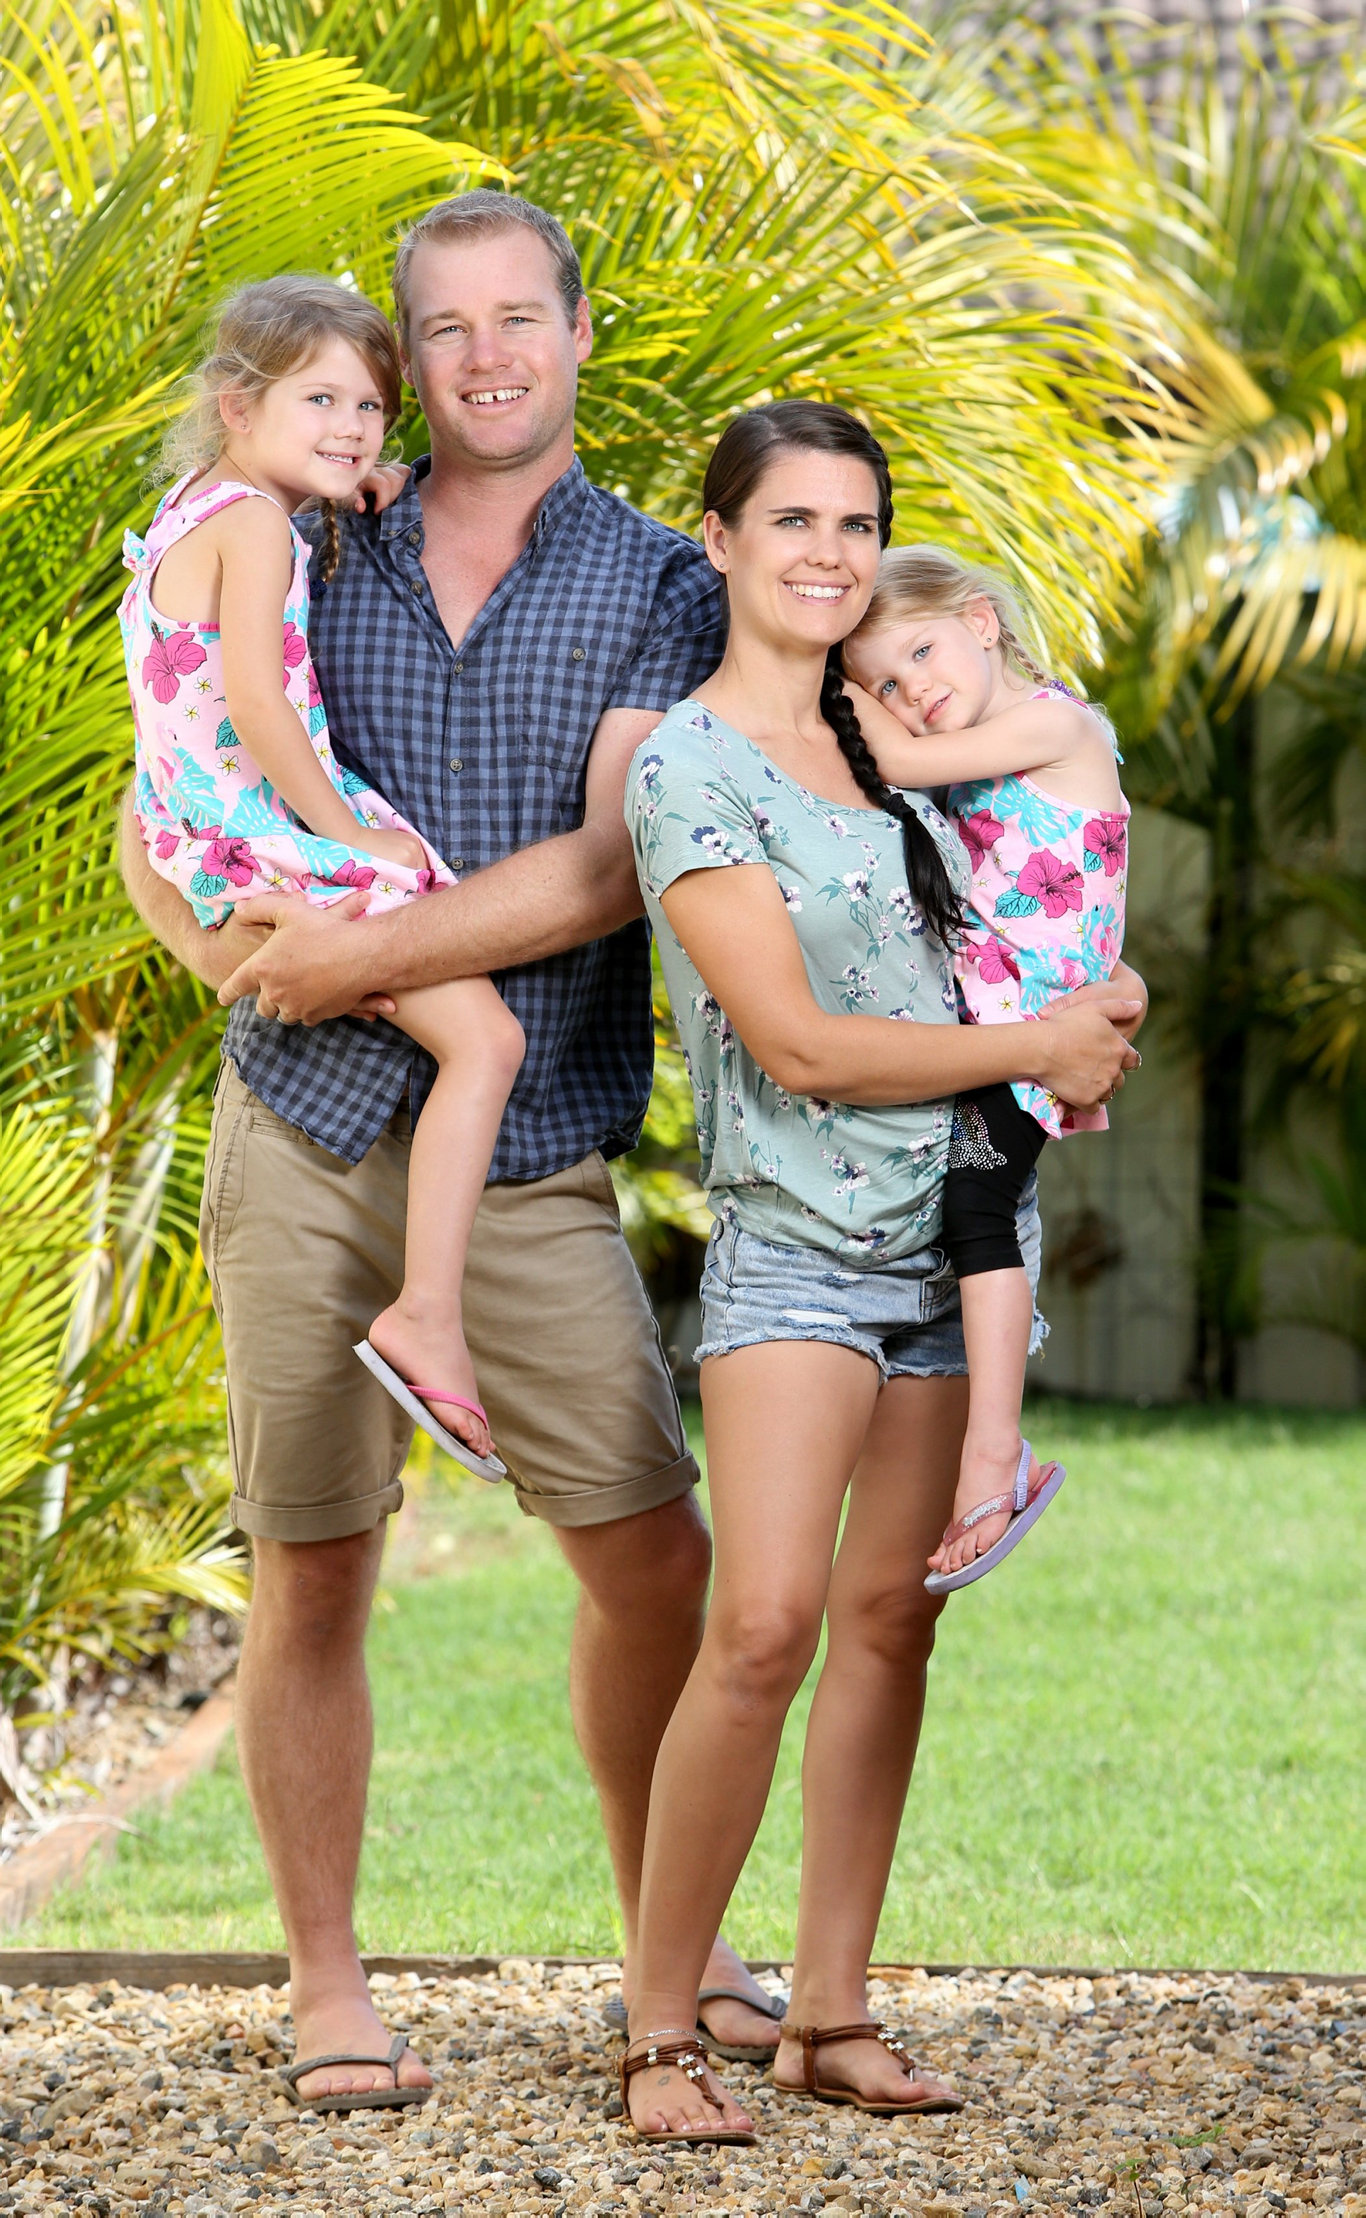 House Rules contestants Shayn and Carly Clark with daughters Harper and Imogen.